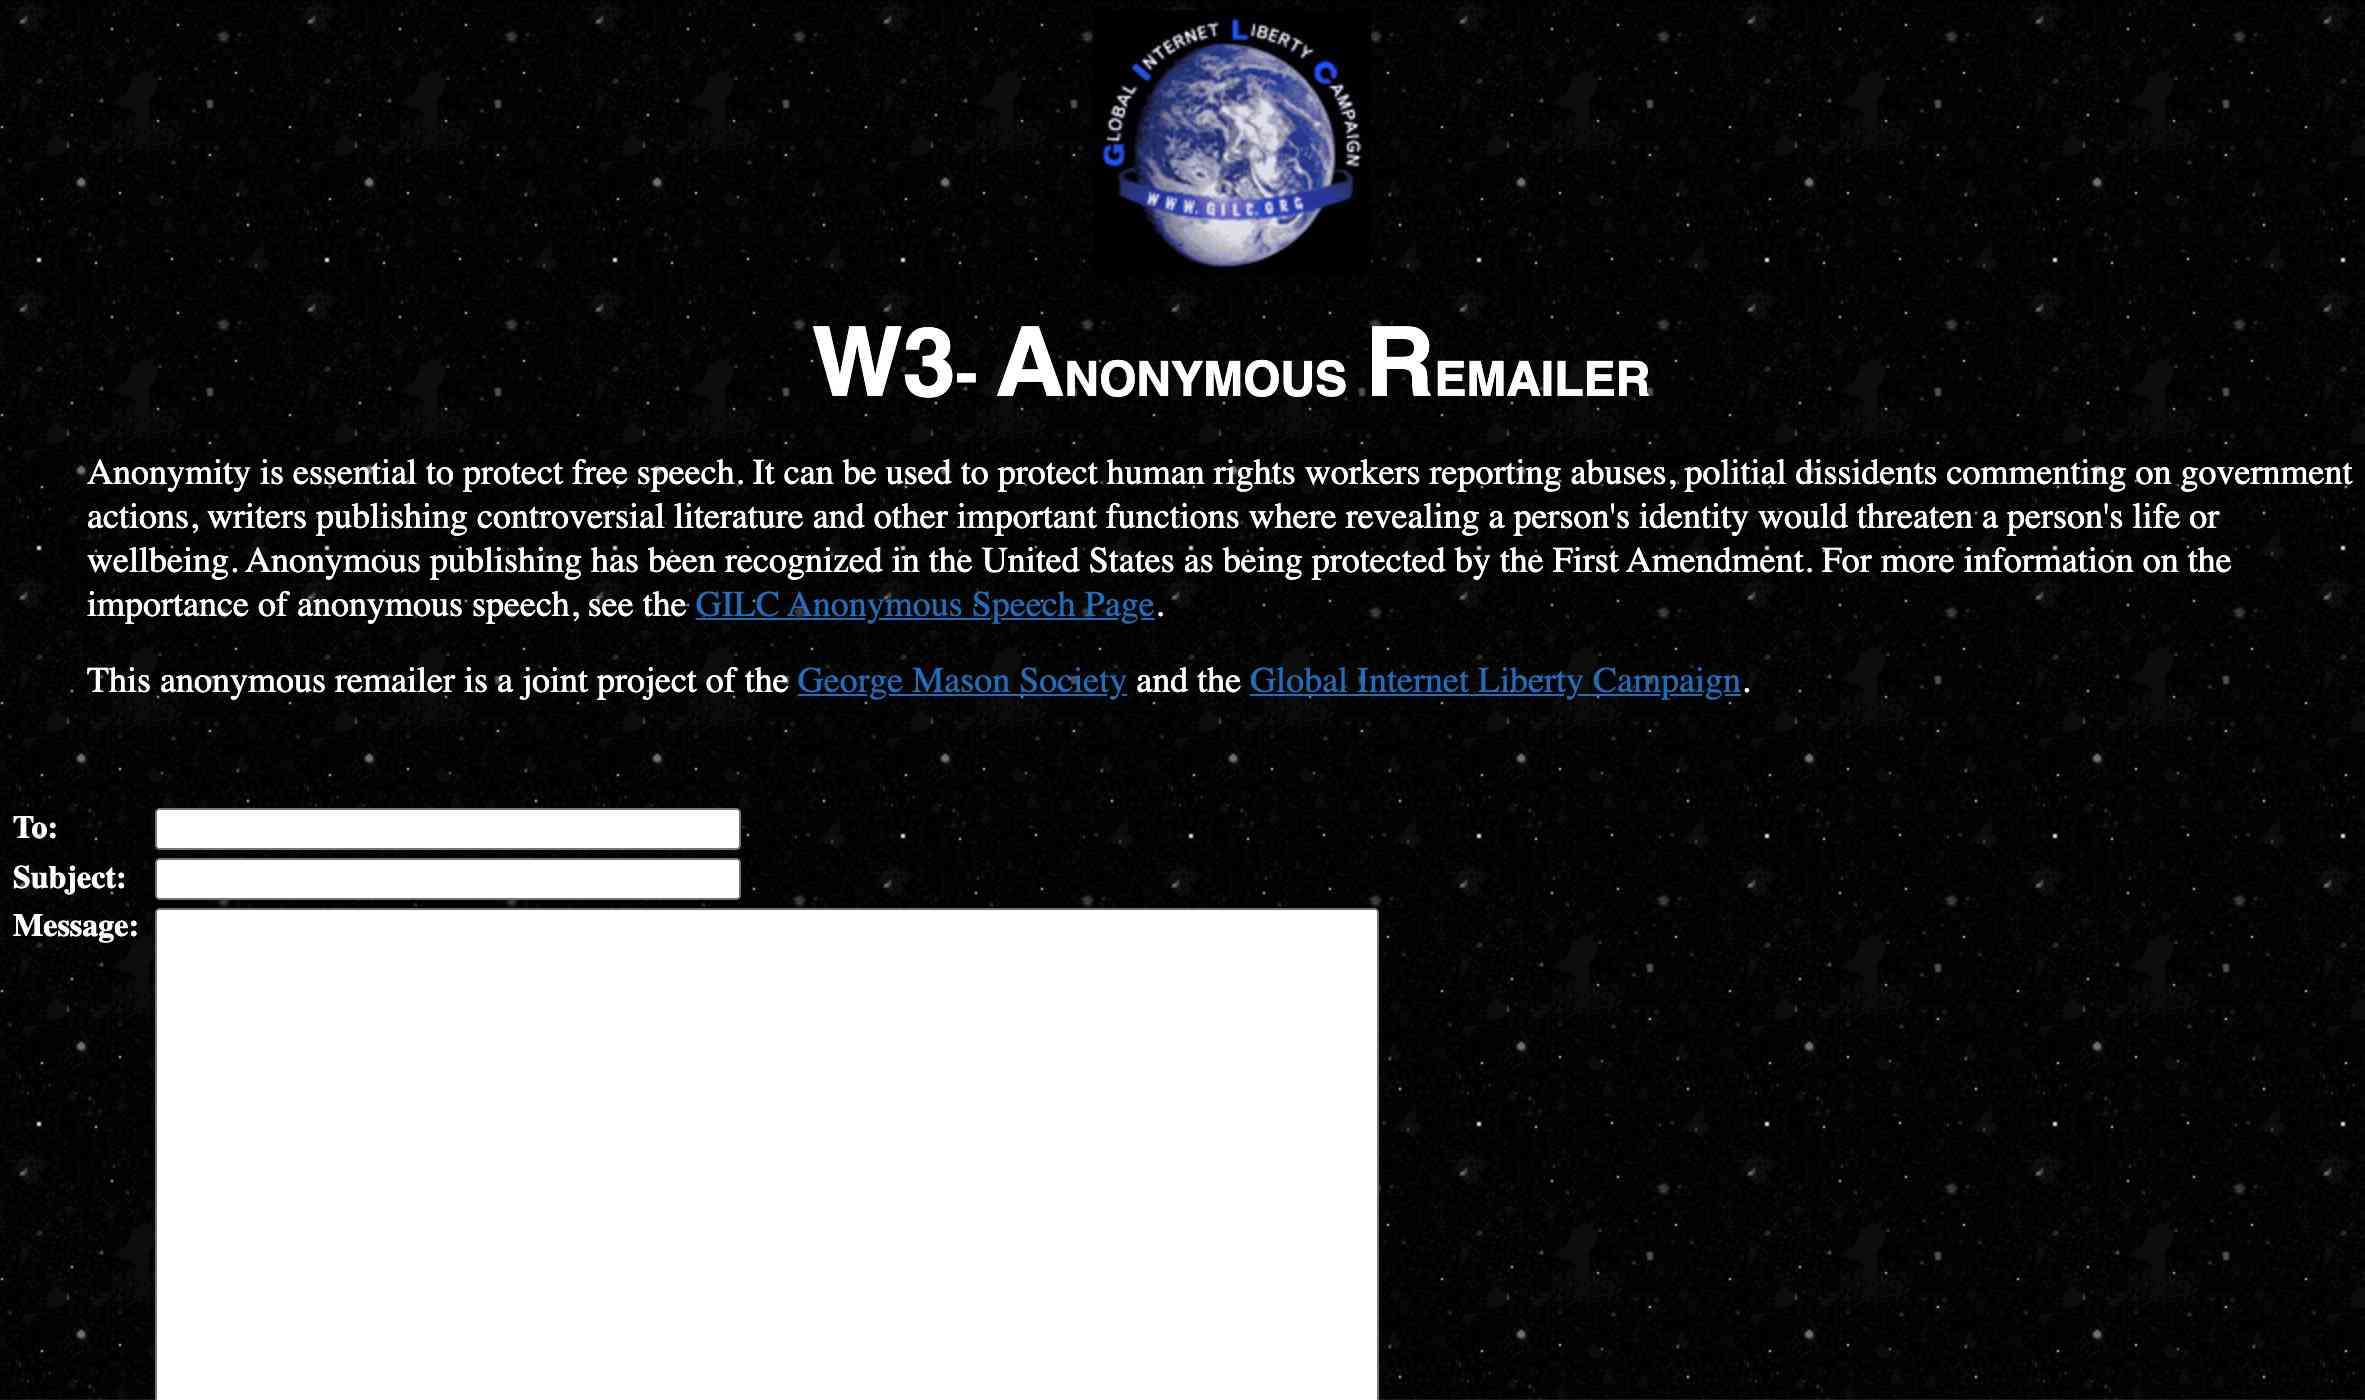 W3-Anonymous Remailer